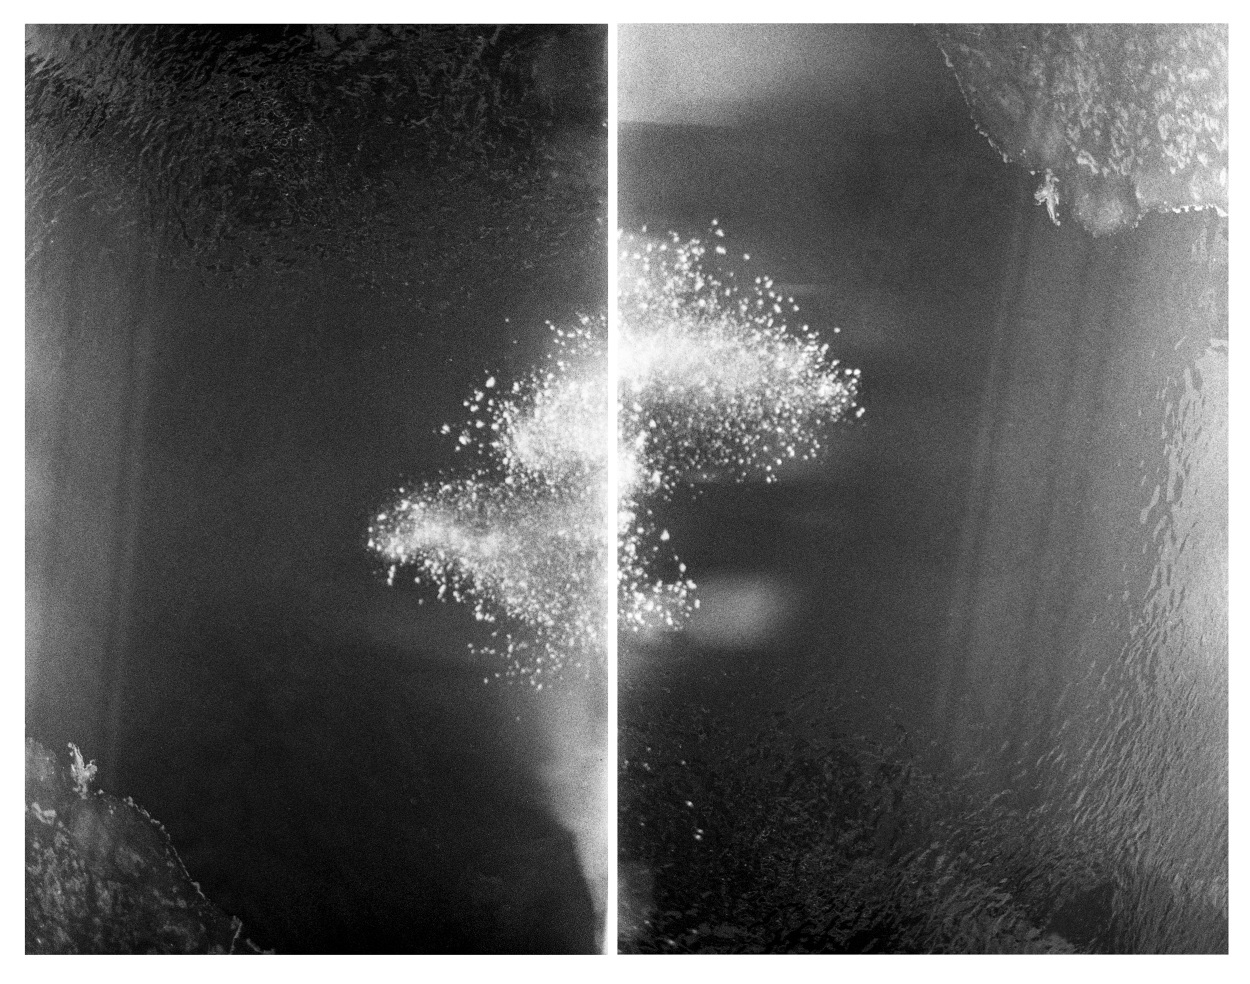 Suspension, 2014, 101.6 x 80cm, 101.6 x 80cm, (40 x 31,496in) photography diptych printed on single surface.